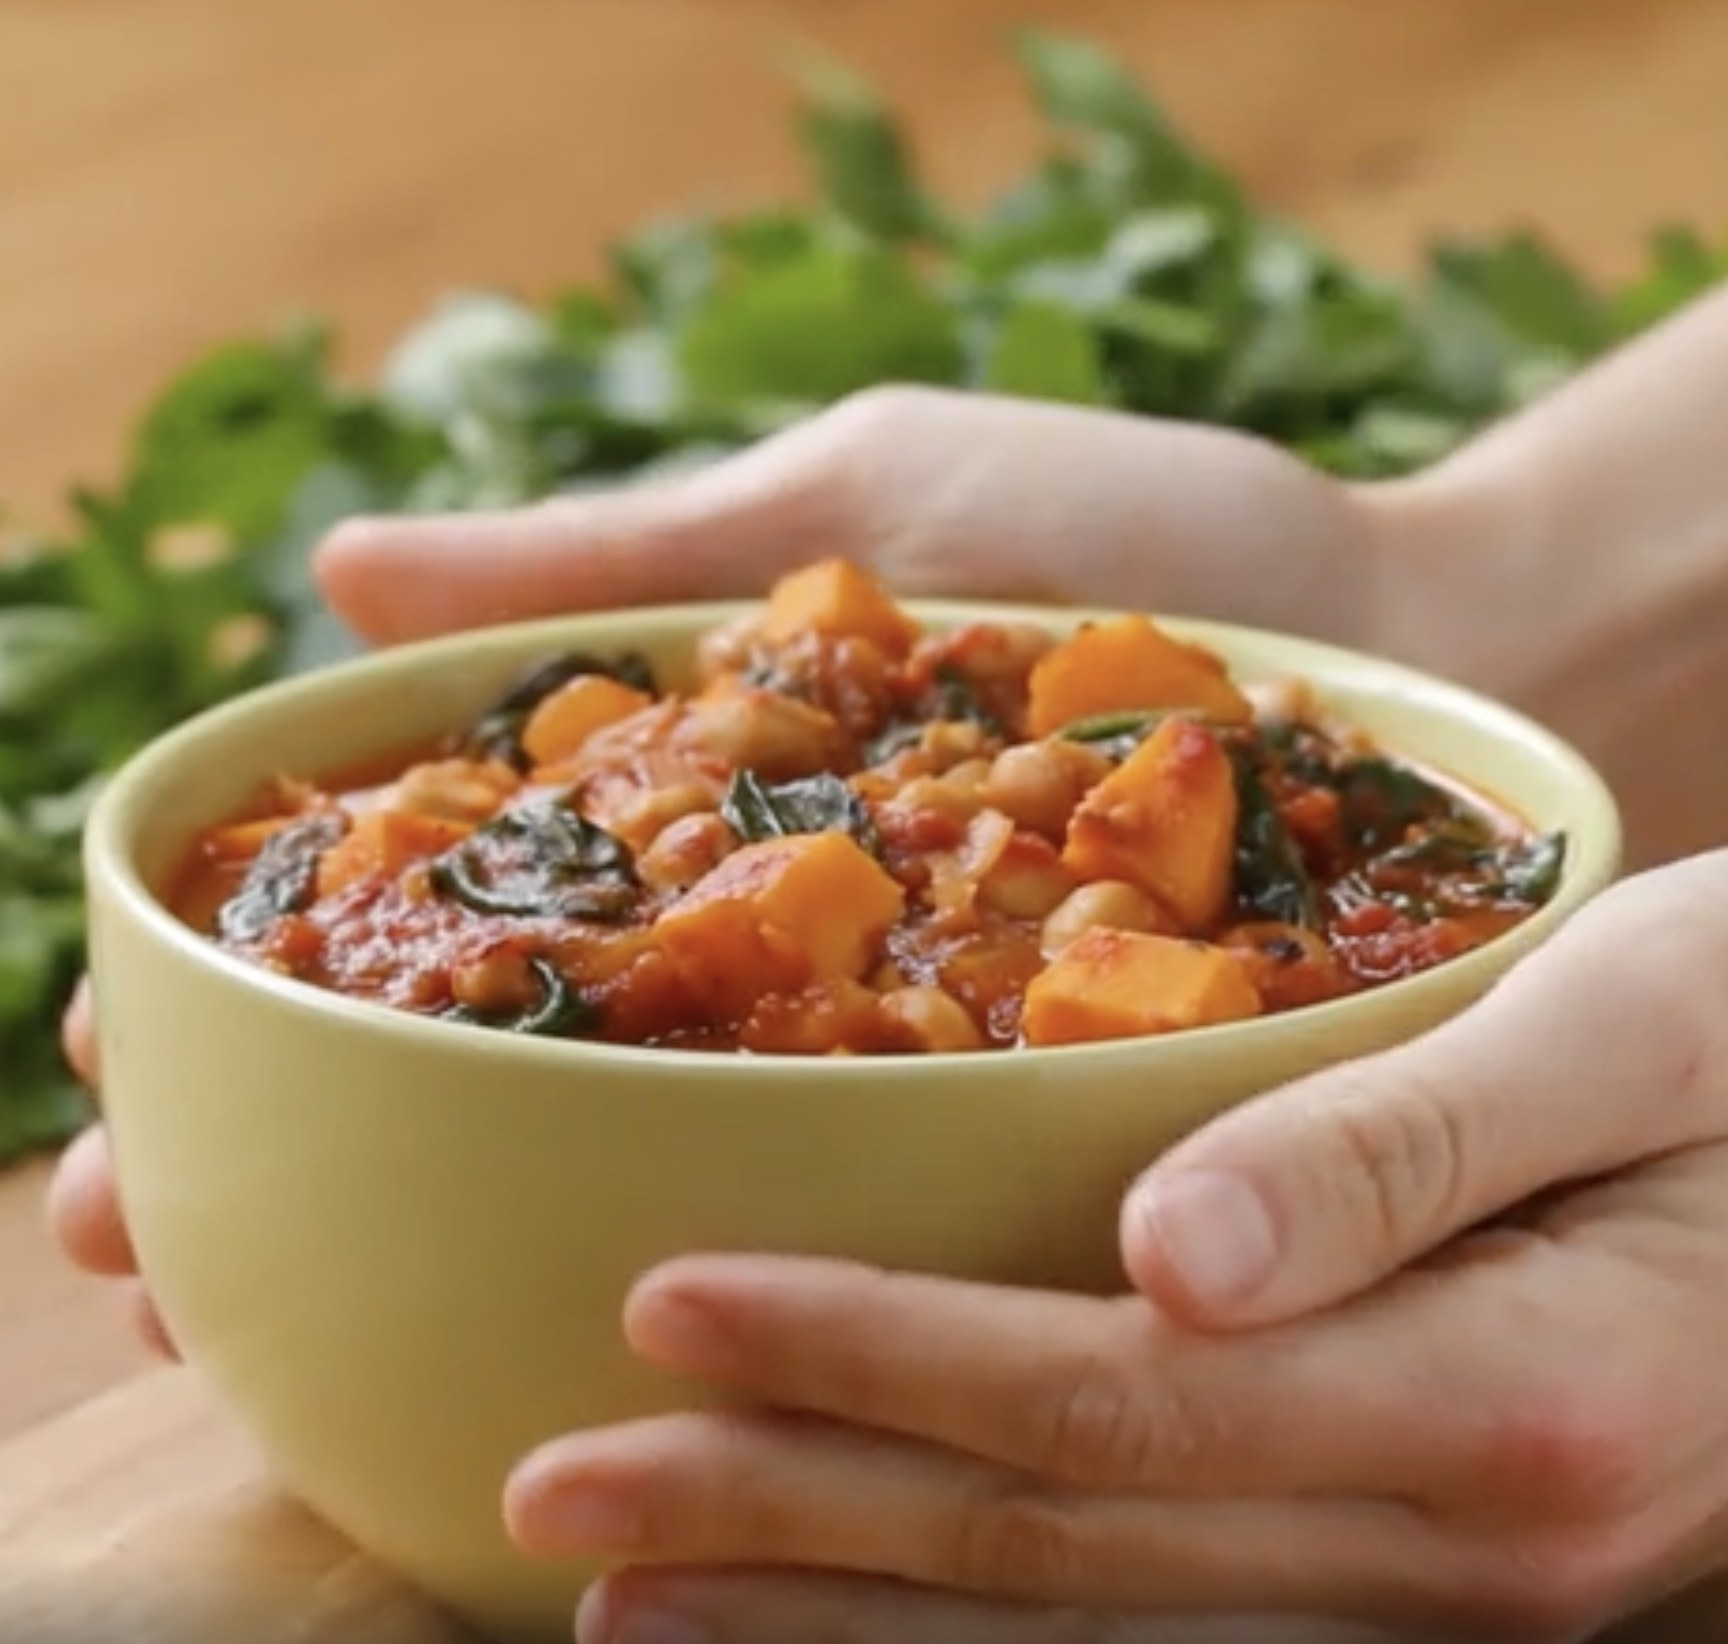 A bowl of chickpea sweet potato stew